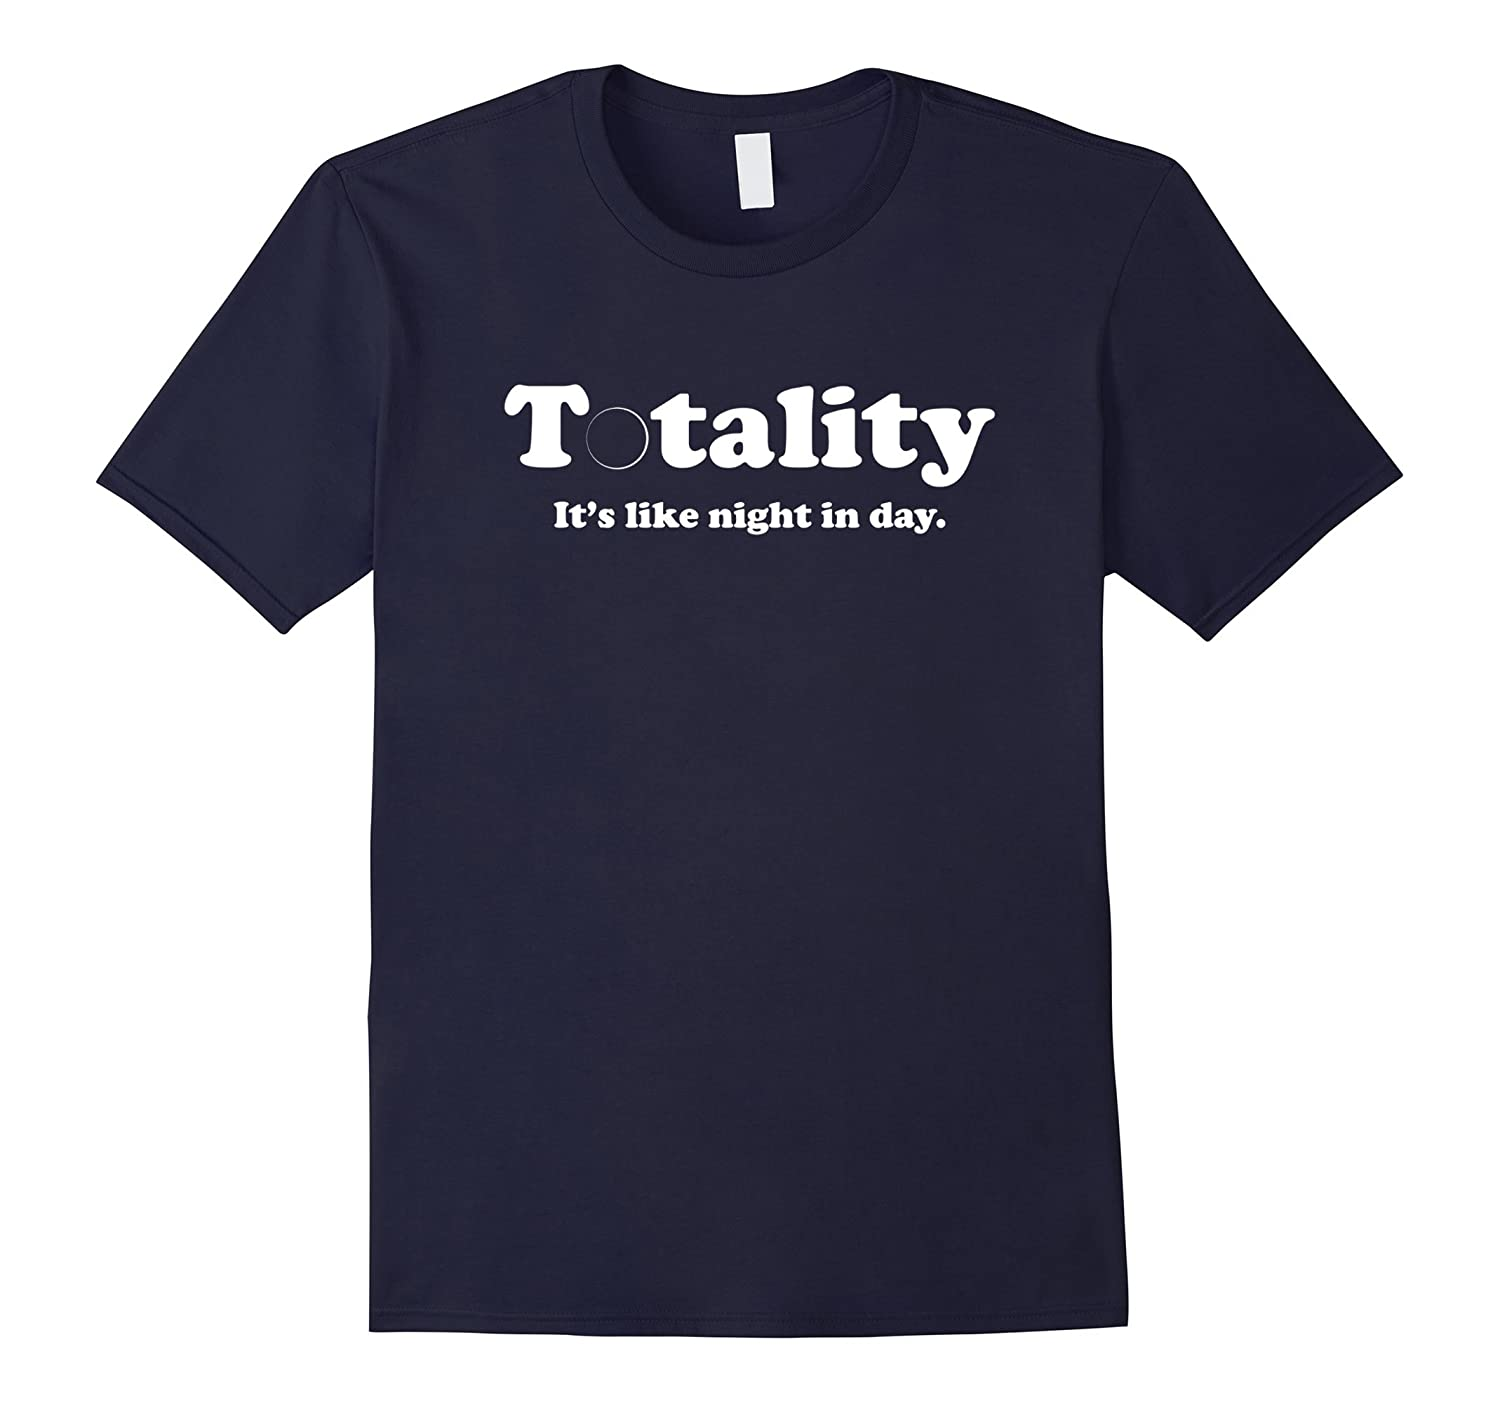 2017 Solar Eclipse Shirt - Totality: It's Like Night in Day-TH